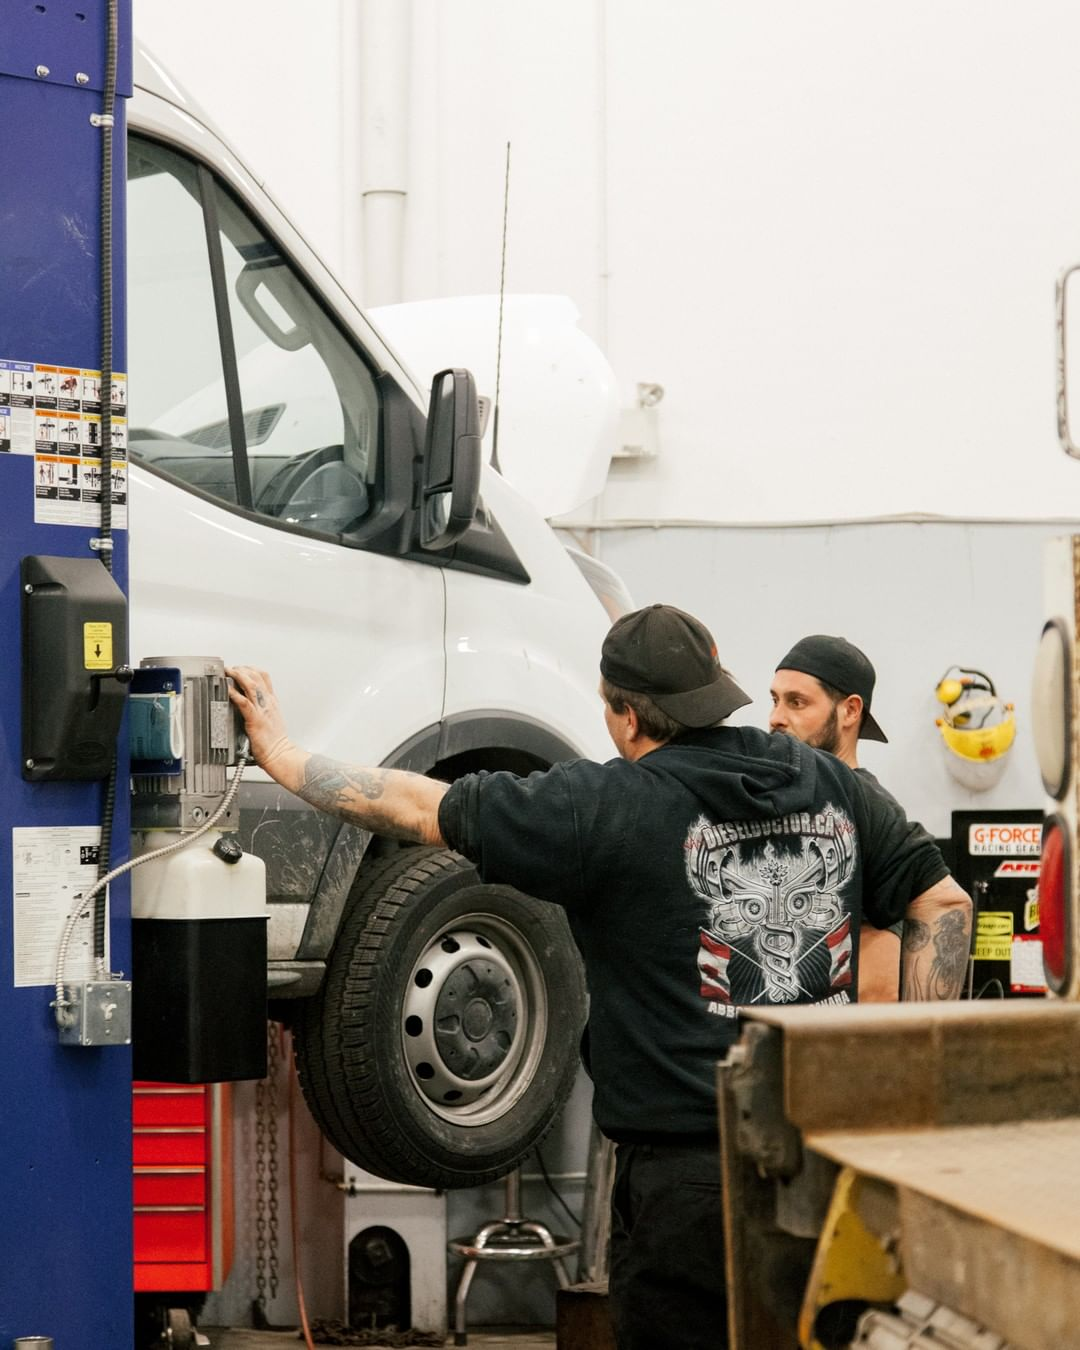 Mechanics using lift in diesel shop